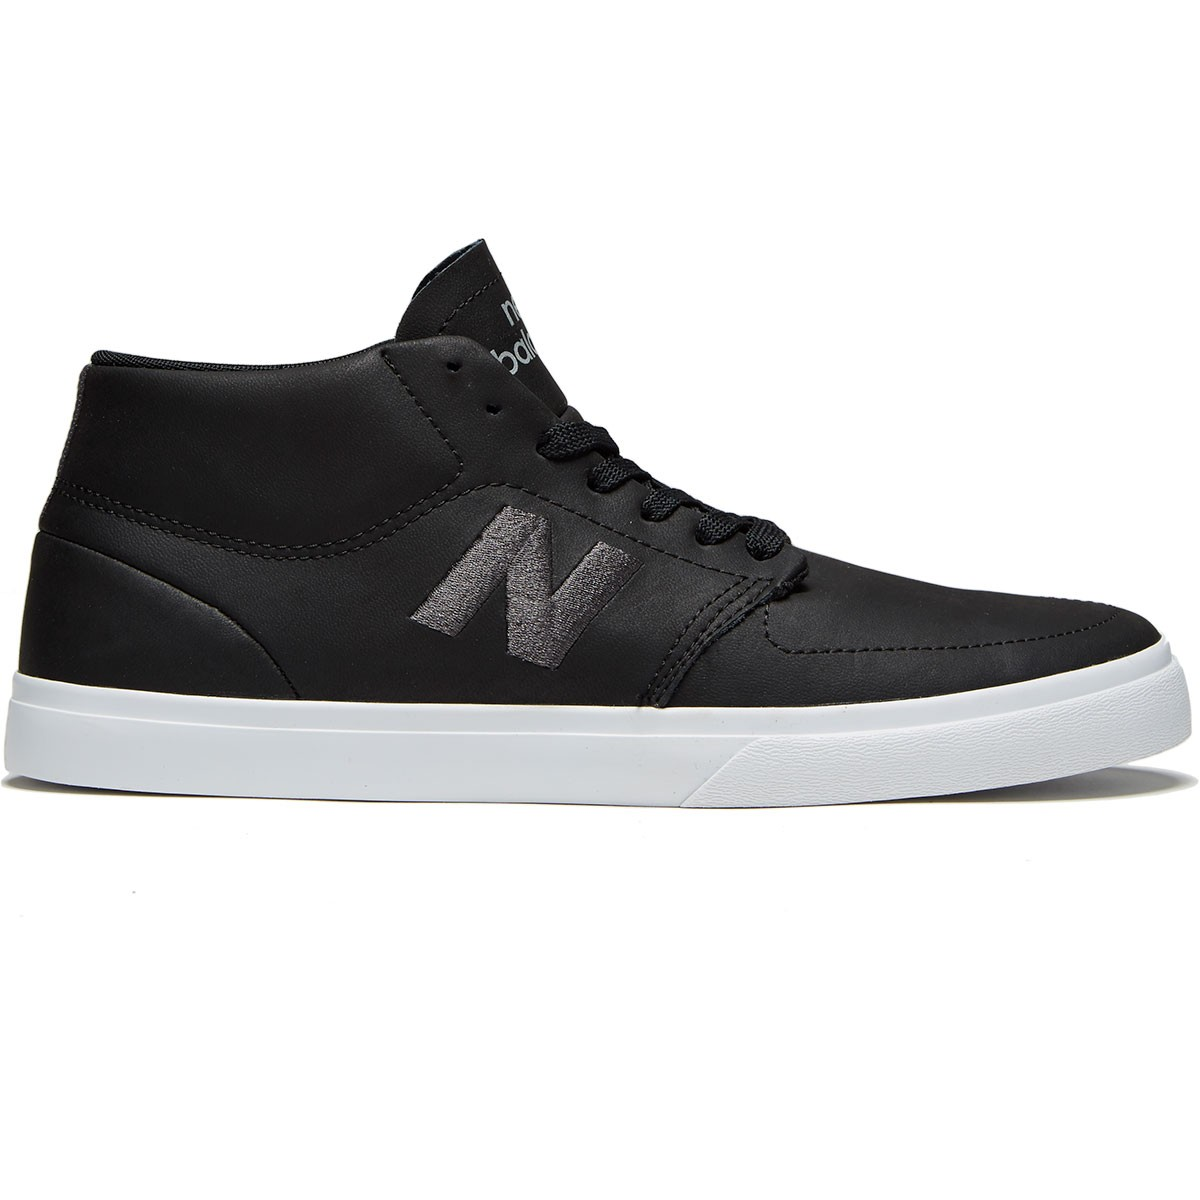 new balance skate shoes. new balance 346 mid shoes - black/grey skate